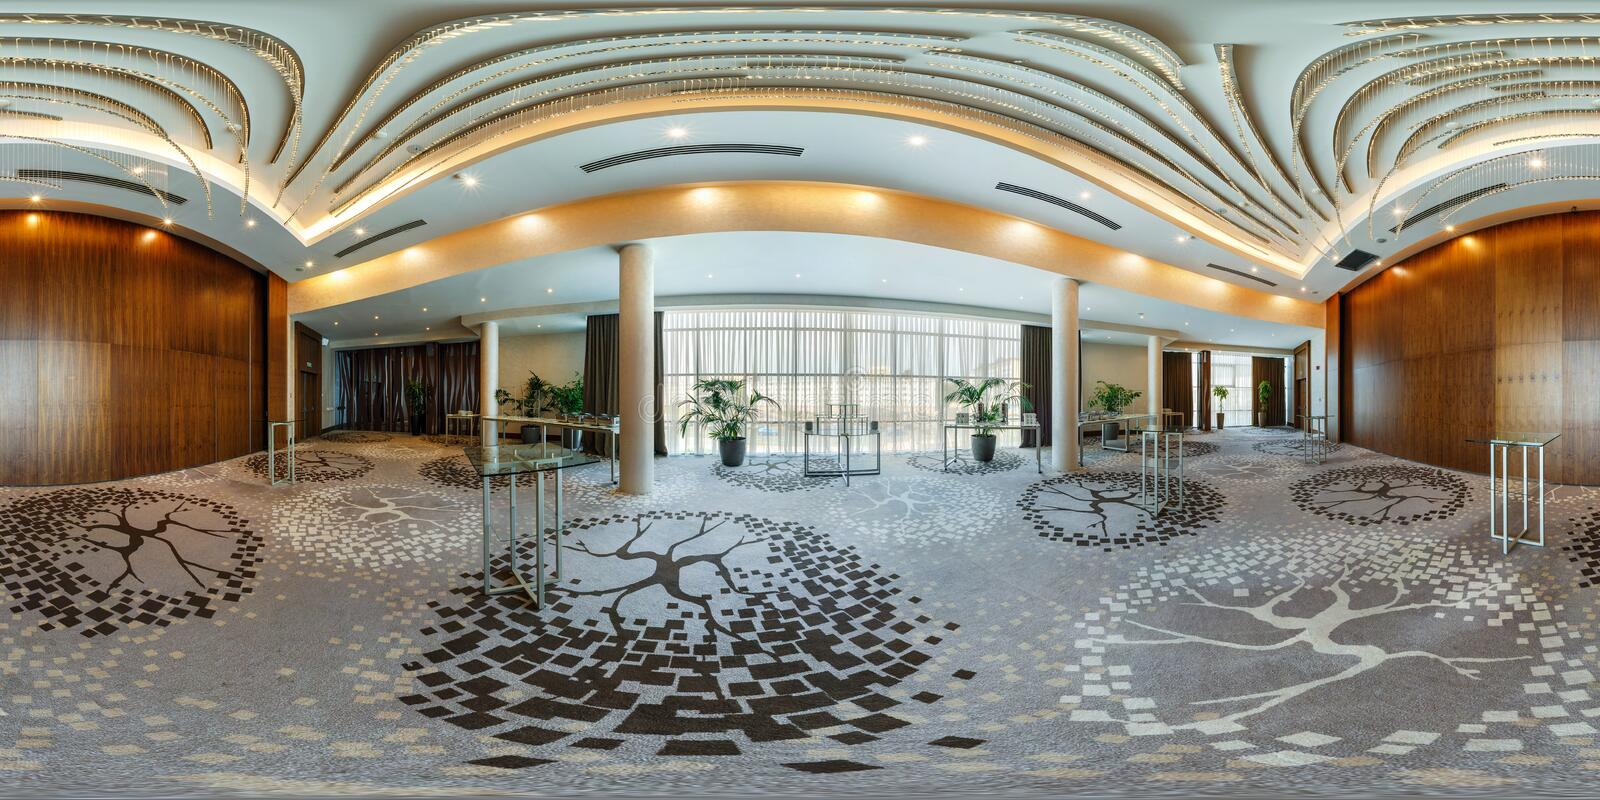 MINSK, BELARUS - JULY, 2017: panorama 360 angle view in interior of luxury empty conference hall for business meetings with stock image